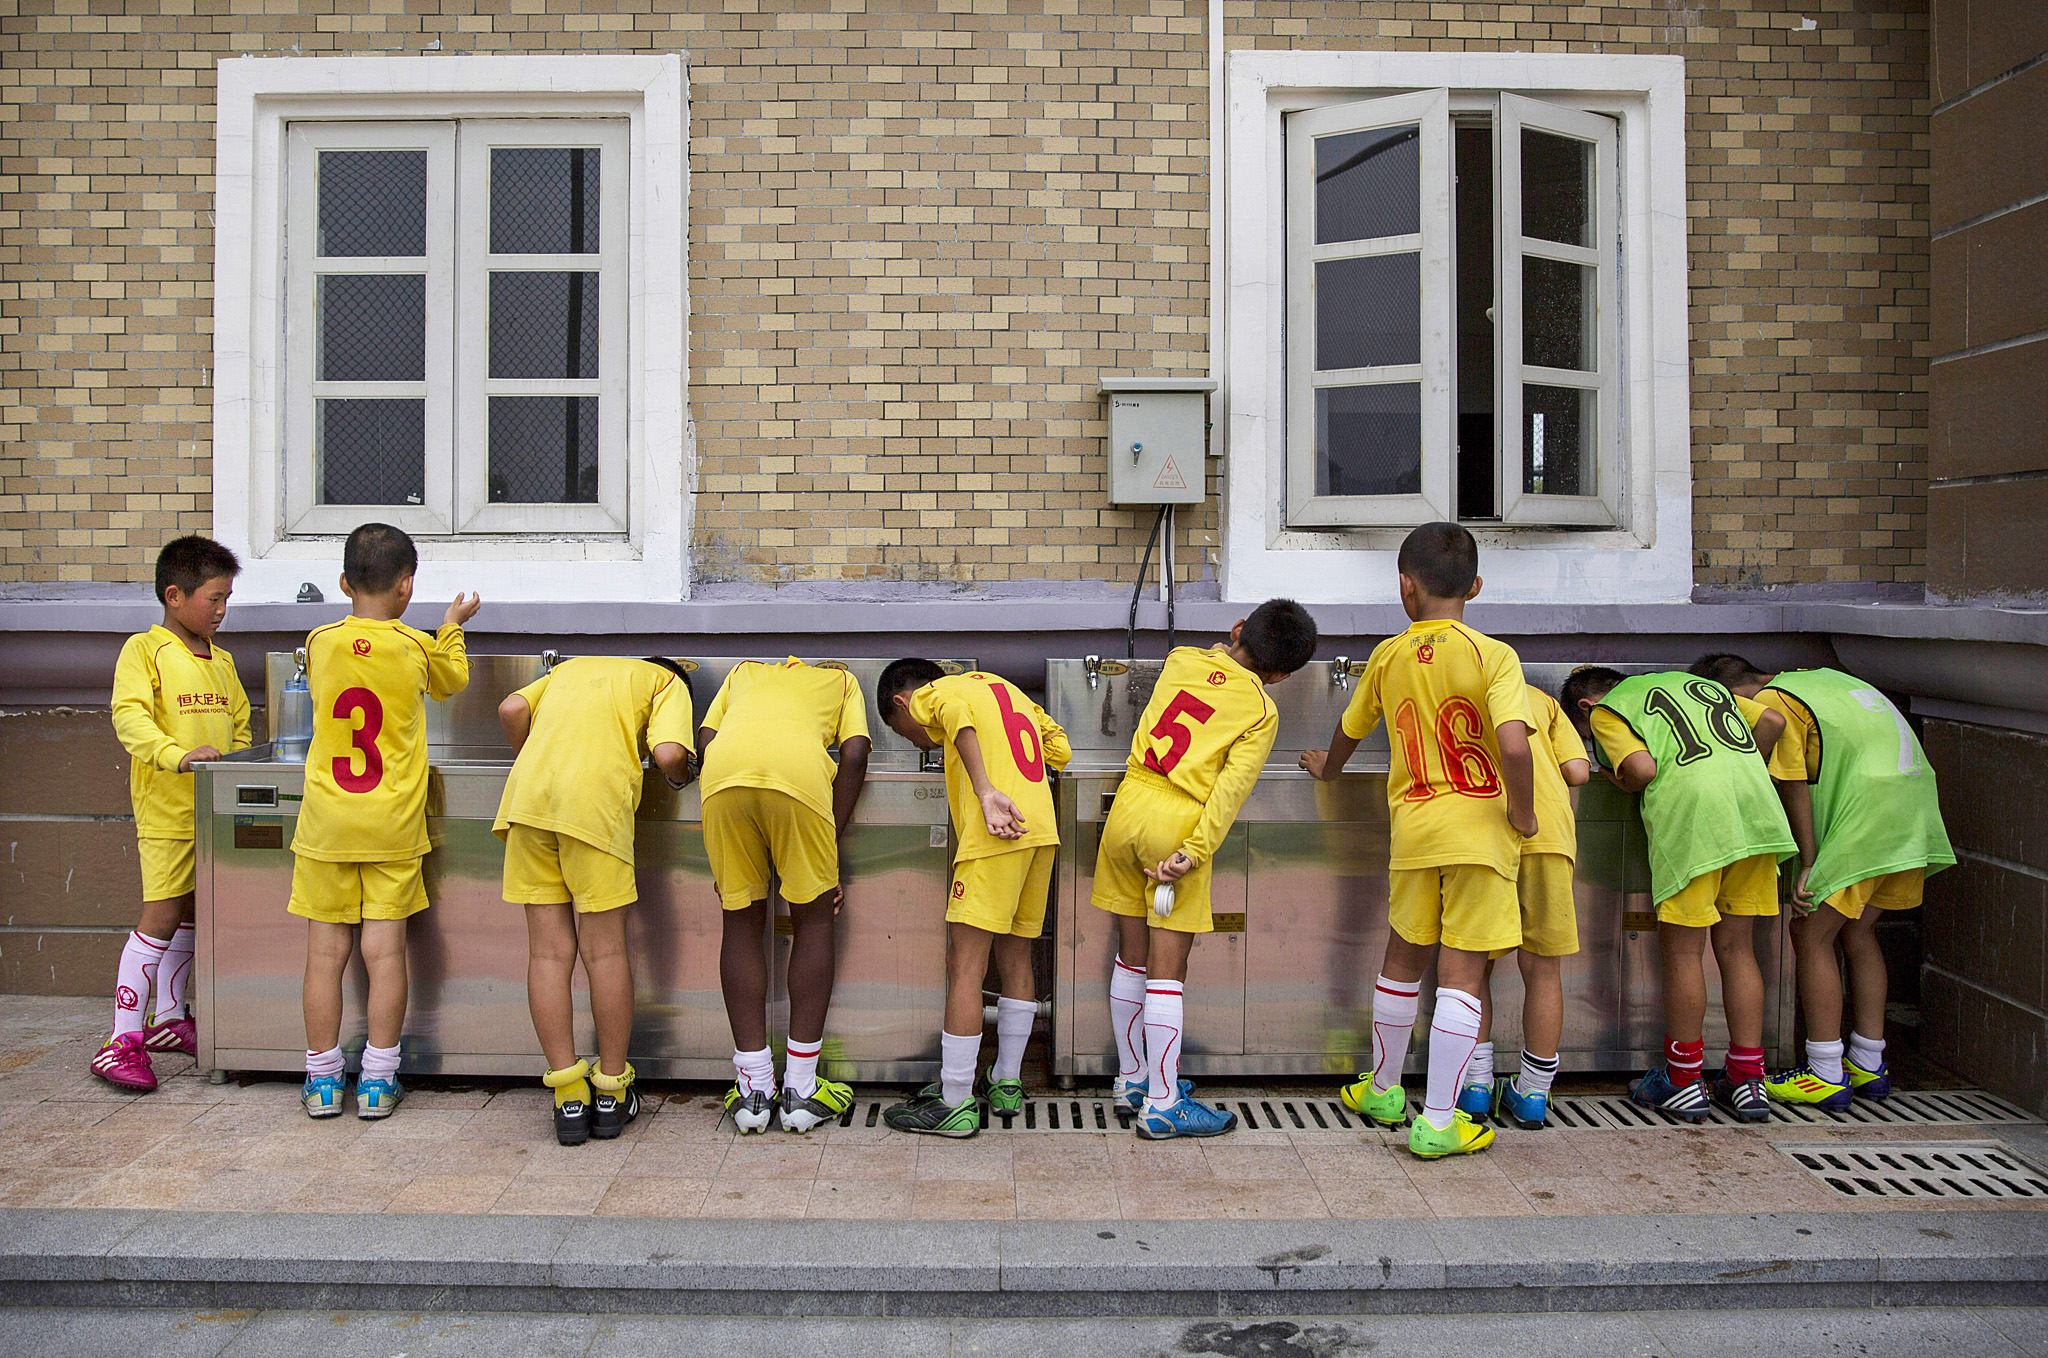 China Sets Sights on Future Glory With World's Biggest Football Academy...QINGYUAN, CHINA - JUNE 12:  Young Chinese football players drink water from a communal tap after training at the Evergrande International Football School on June 12, 2014 near Qingyuan in Guangdong Province, China. The sprawling 167-acre campus is the brainchild of property tycoon Xu Jiayin, whose ambition is to train a generation of young athletes to establish China as a football powerhouse. The school is considered the largest football academy in the world with 2400 students, more than 50 pitches and a squad of Spanish coaches through a partnership with Real Madrid. (Photo by Kevin Frayer/Getty Images)